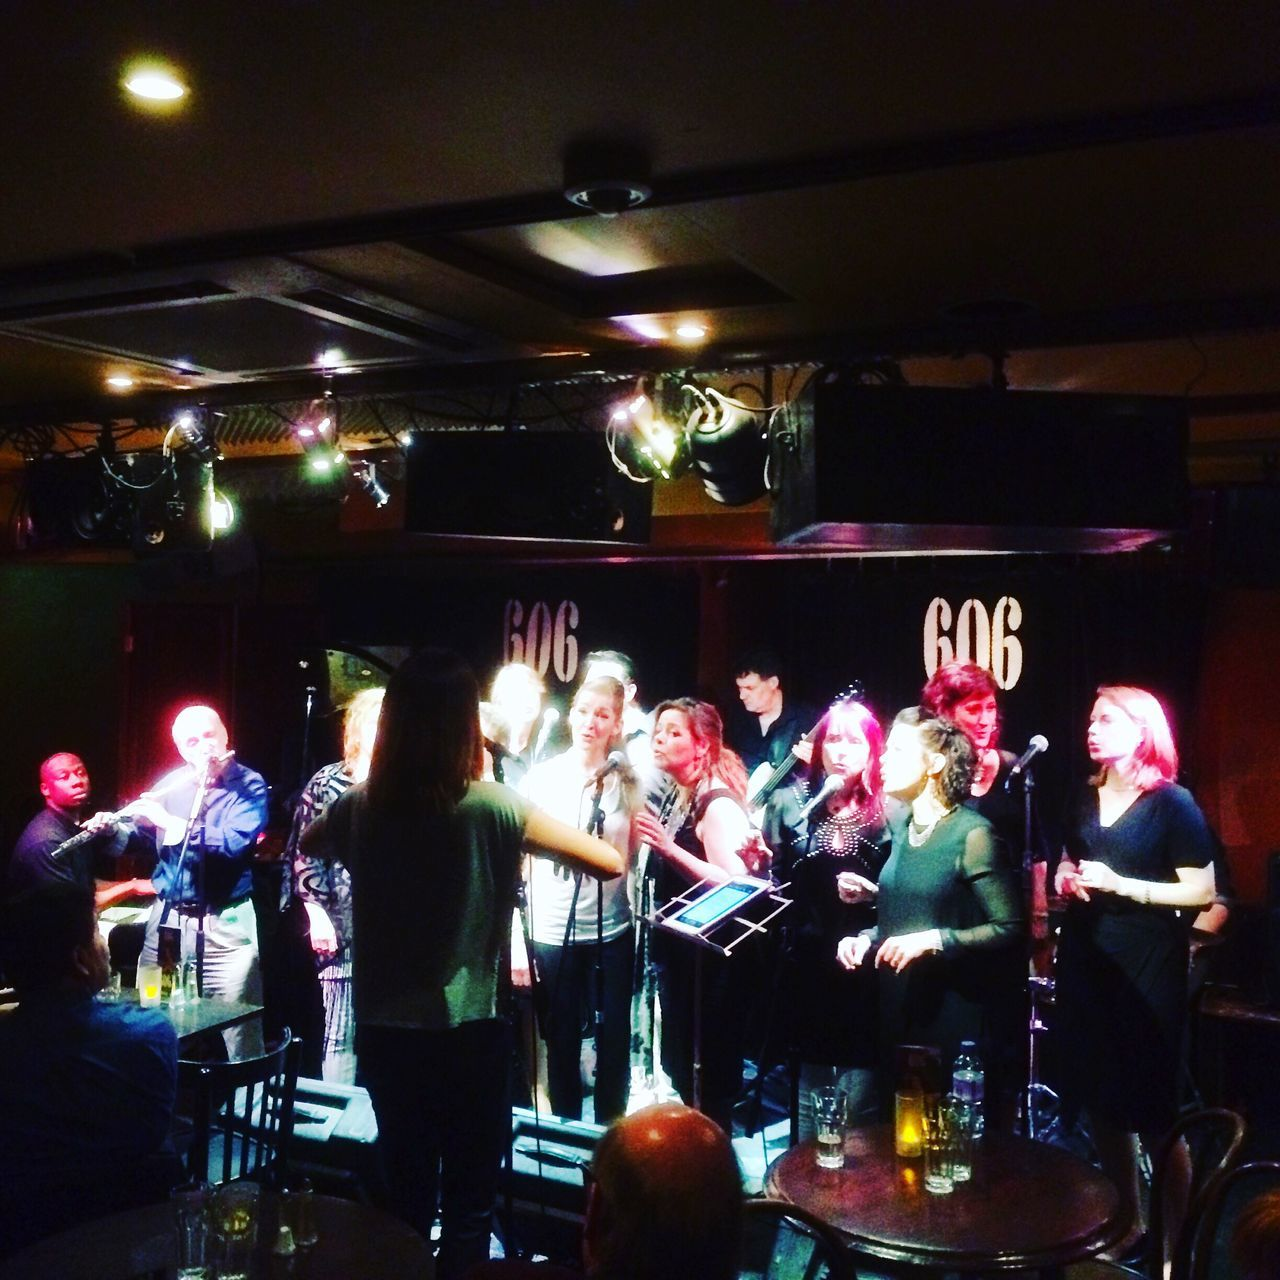 Women Who Inspire You 606 Jazz Club Chelsea Wandsworth Jazz Jazz Concert Jazzfest Jazz Club Jazzband GCGC Gospel Gospel Music Gospel Choir Gospelmusic Gospel Show